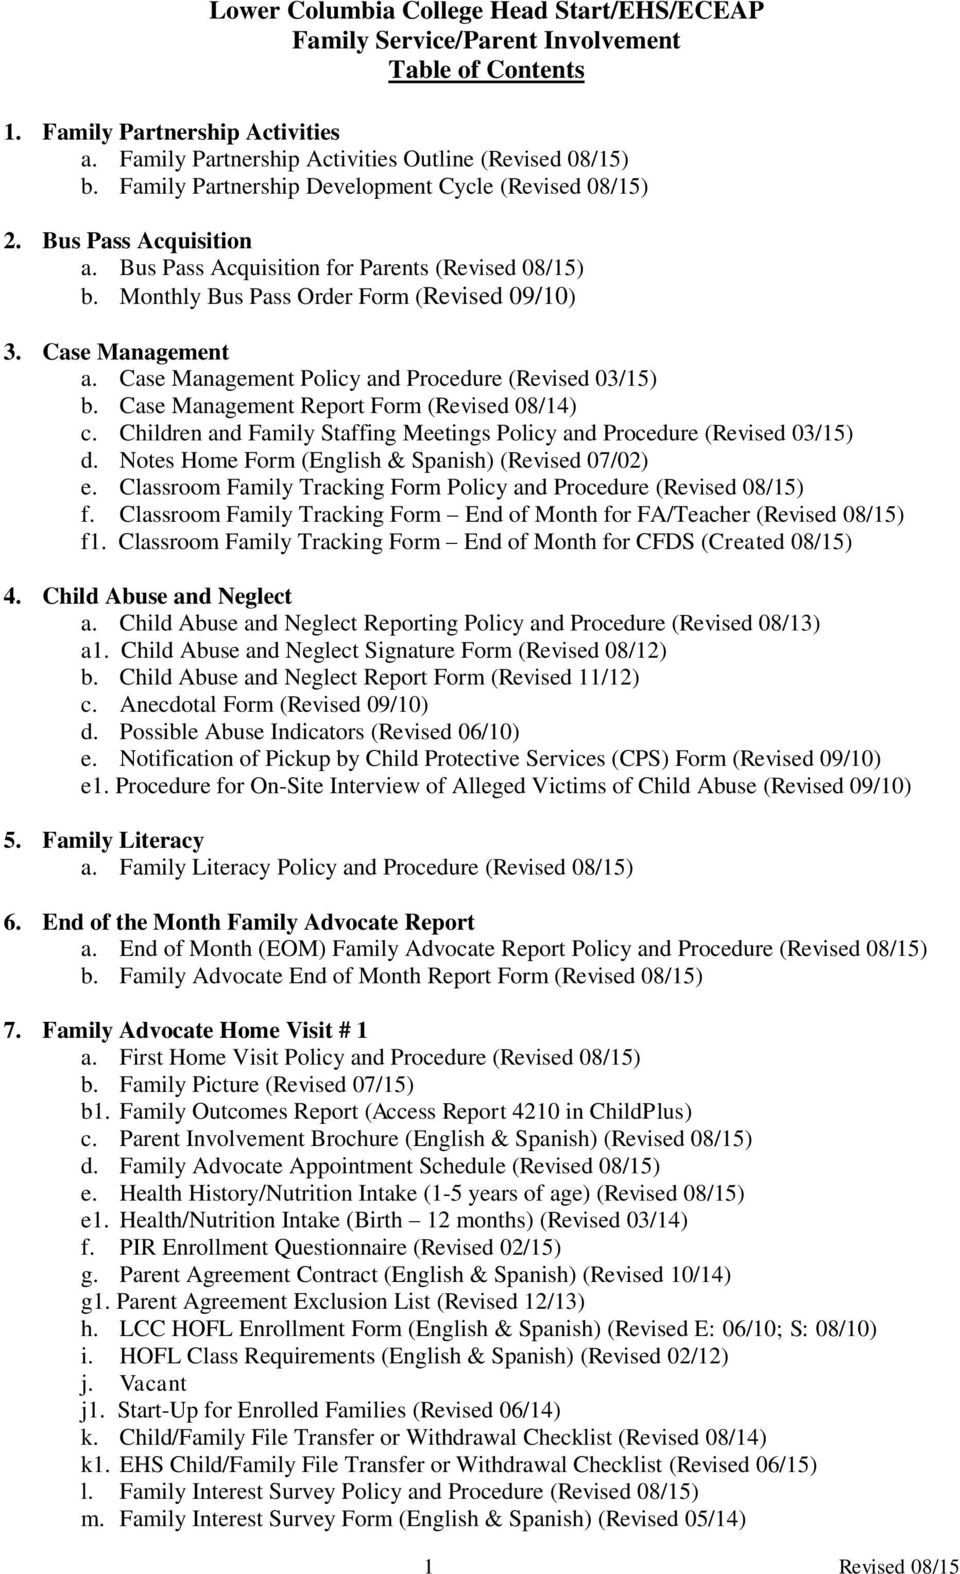 Case Management Policy and Procedure (Revised 03/15) b. Case Management Report Form (Revised 08/14) c. Children and Family Staffing Meetings Policy and Procedure (Revised 03/15) d.